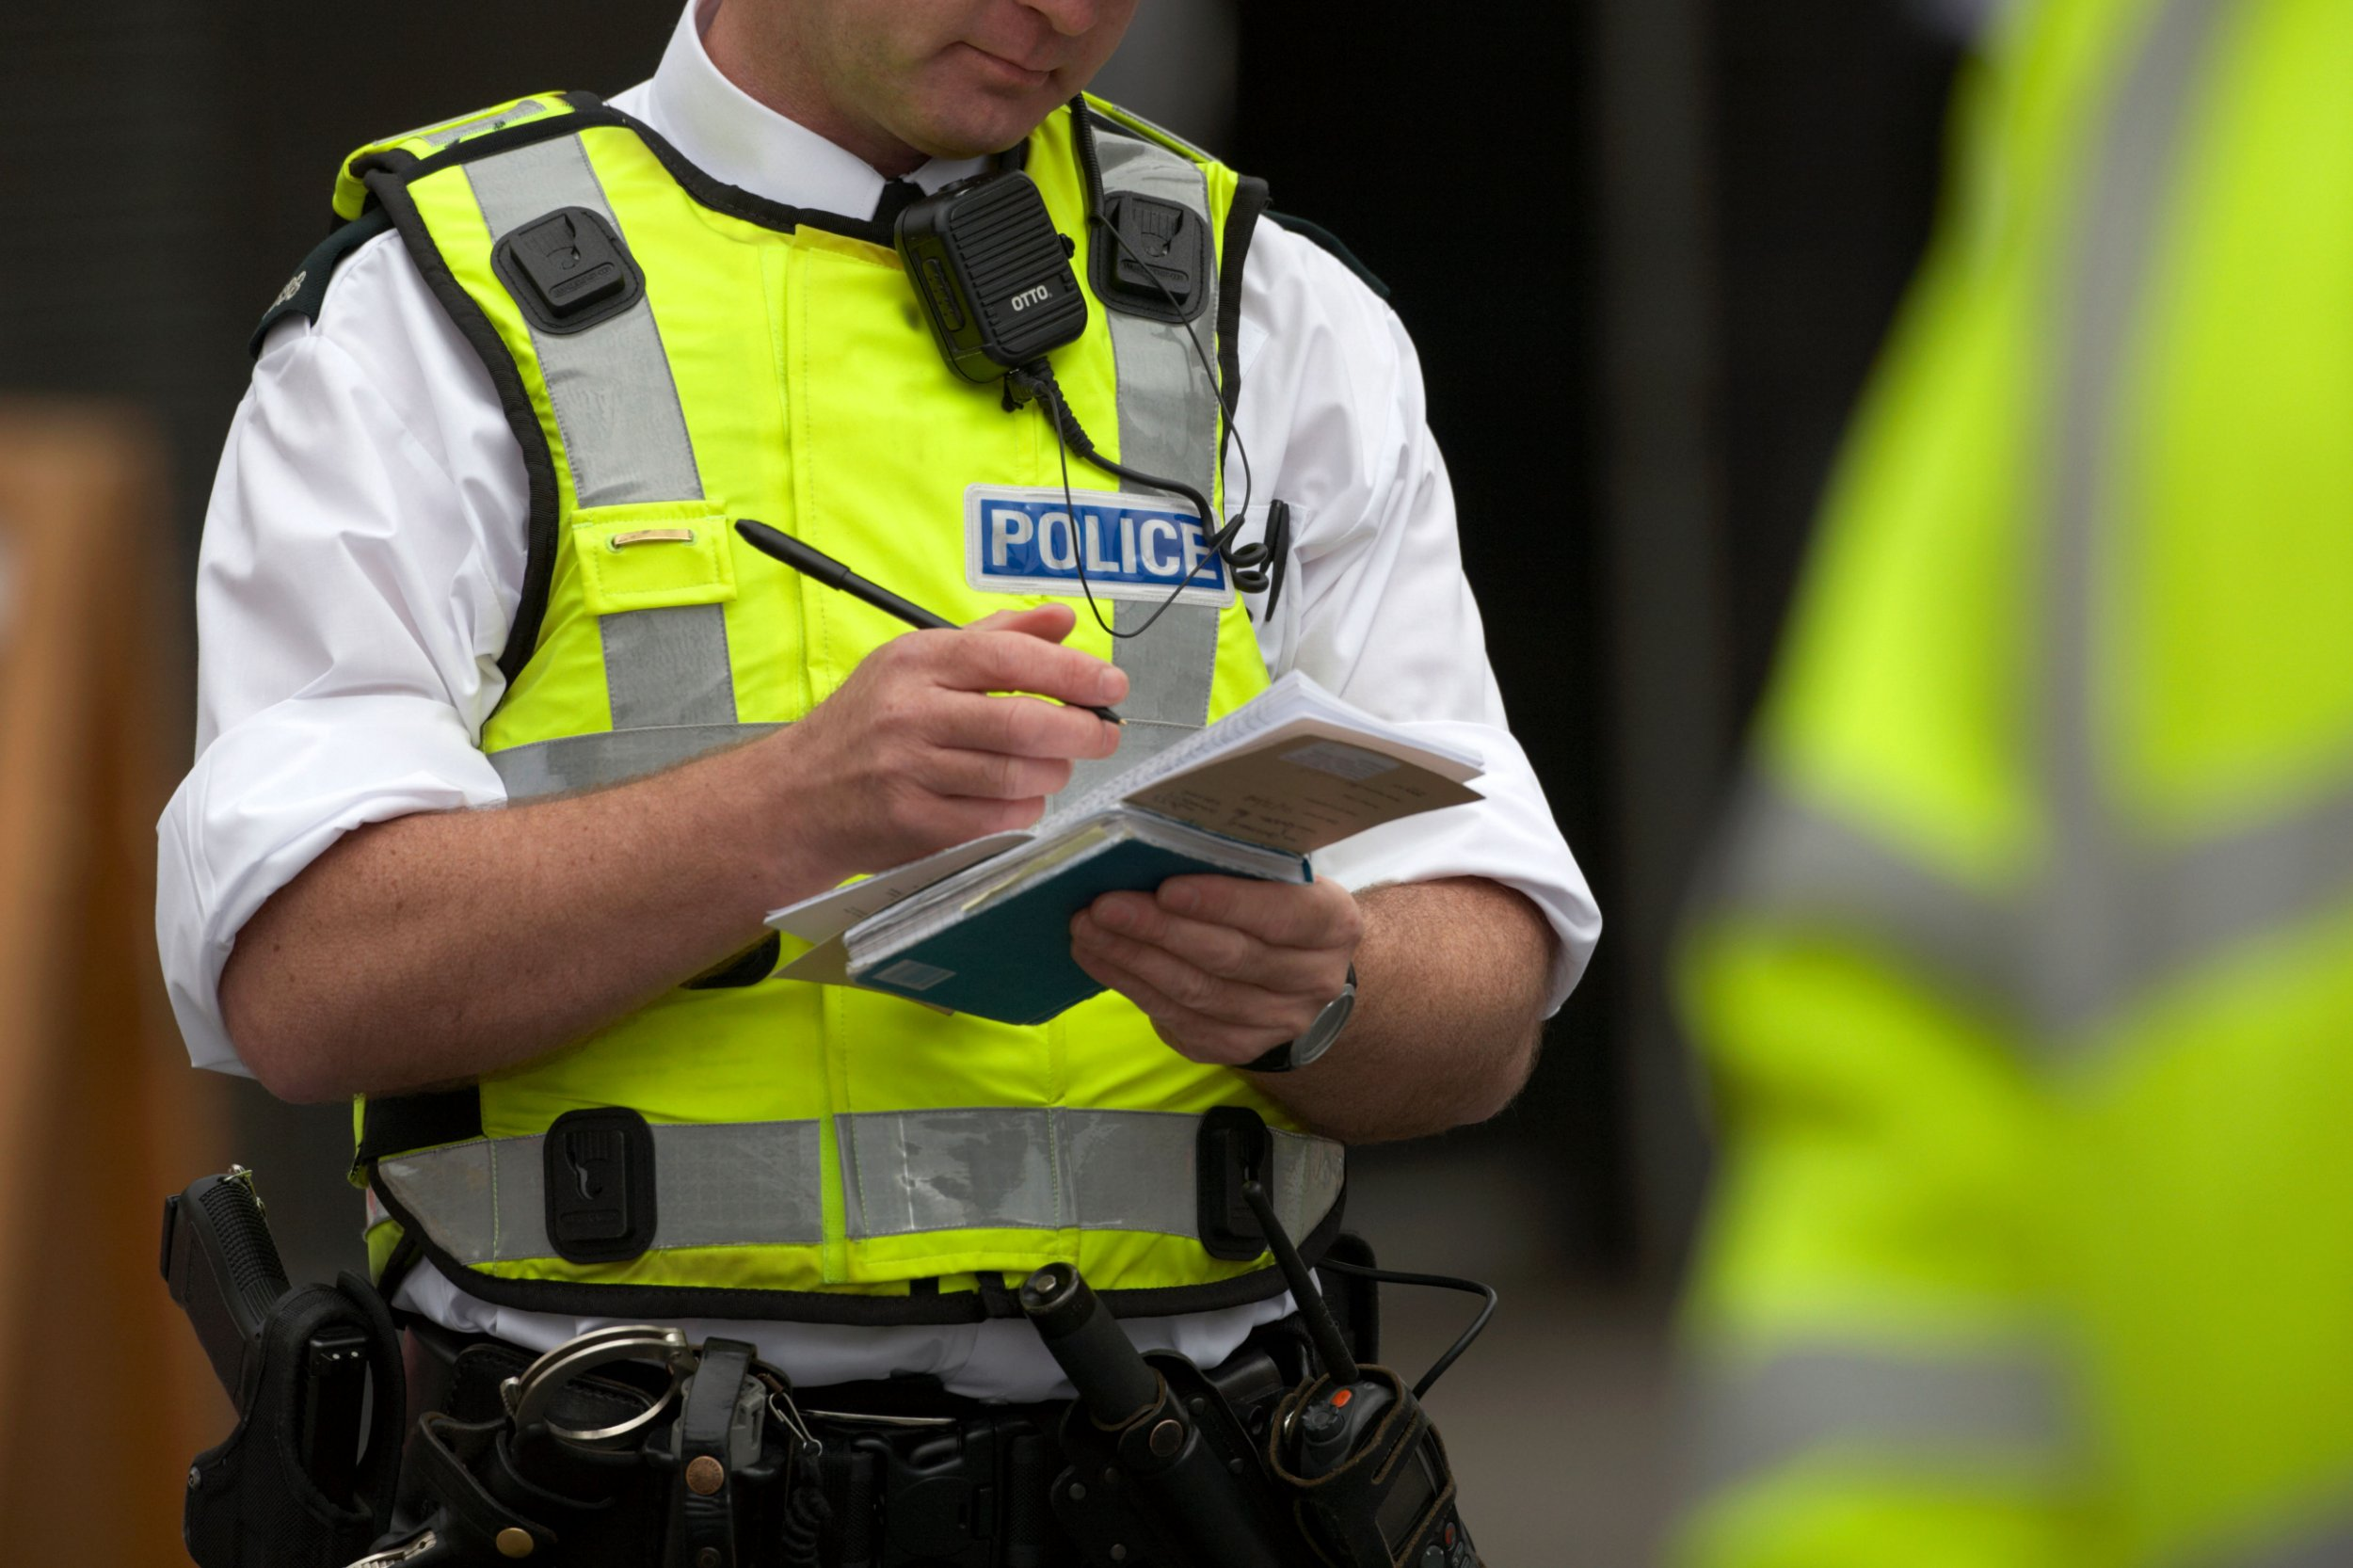 B0TMBA PSNI police service northern ireland officer in high vis jacket making notes in his notebook